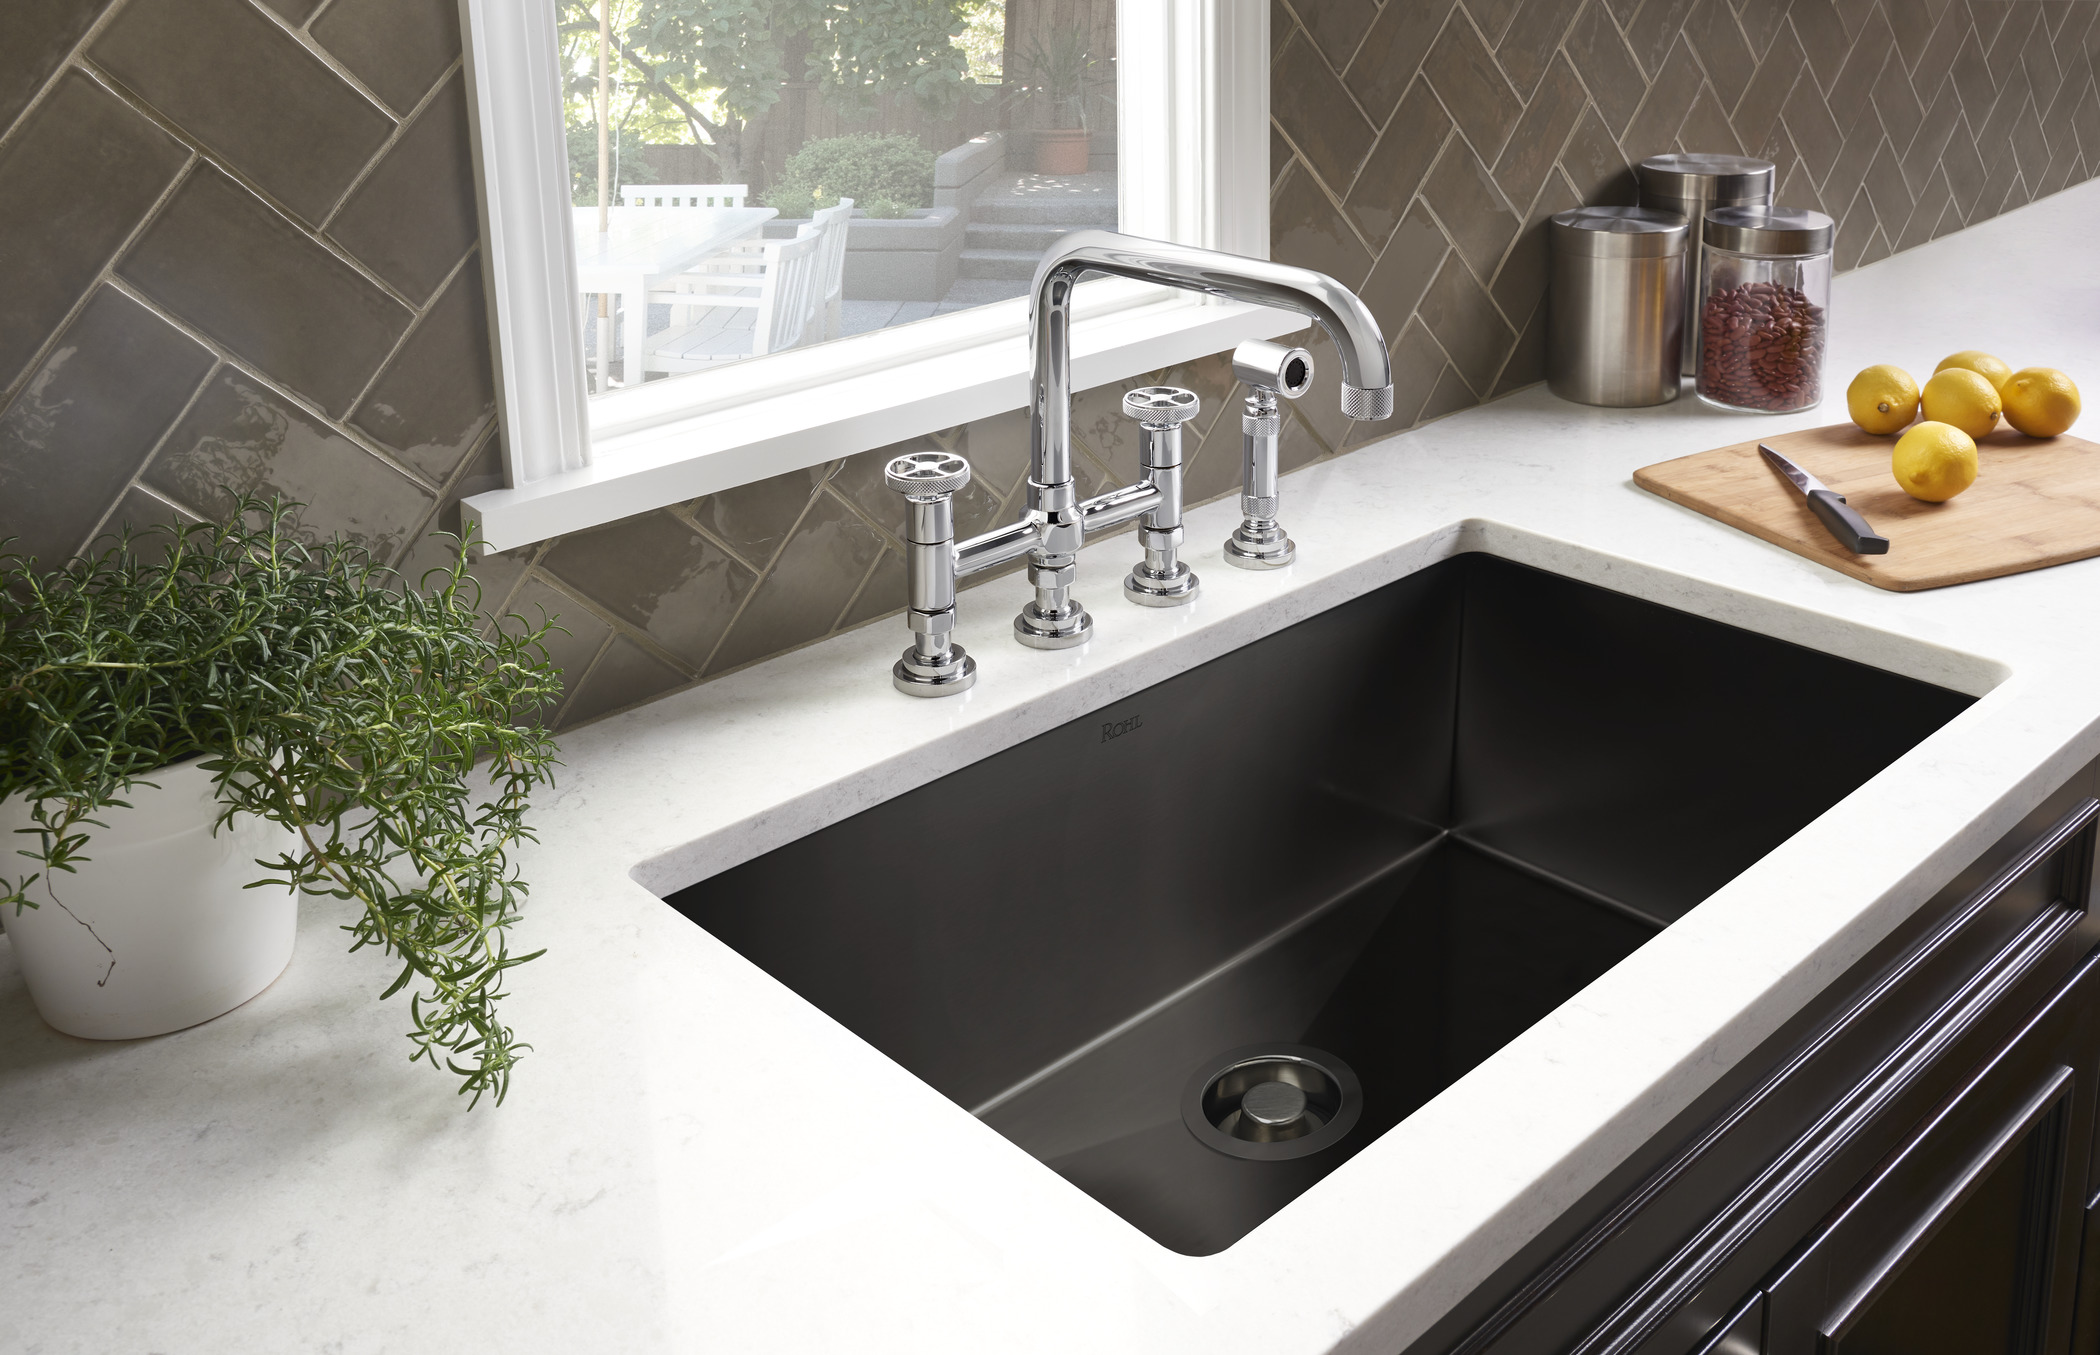 Sizes Of Stainless Steel Kitchen Sinks